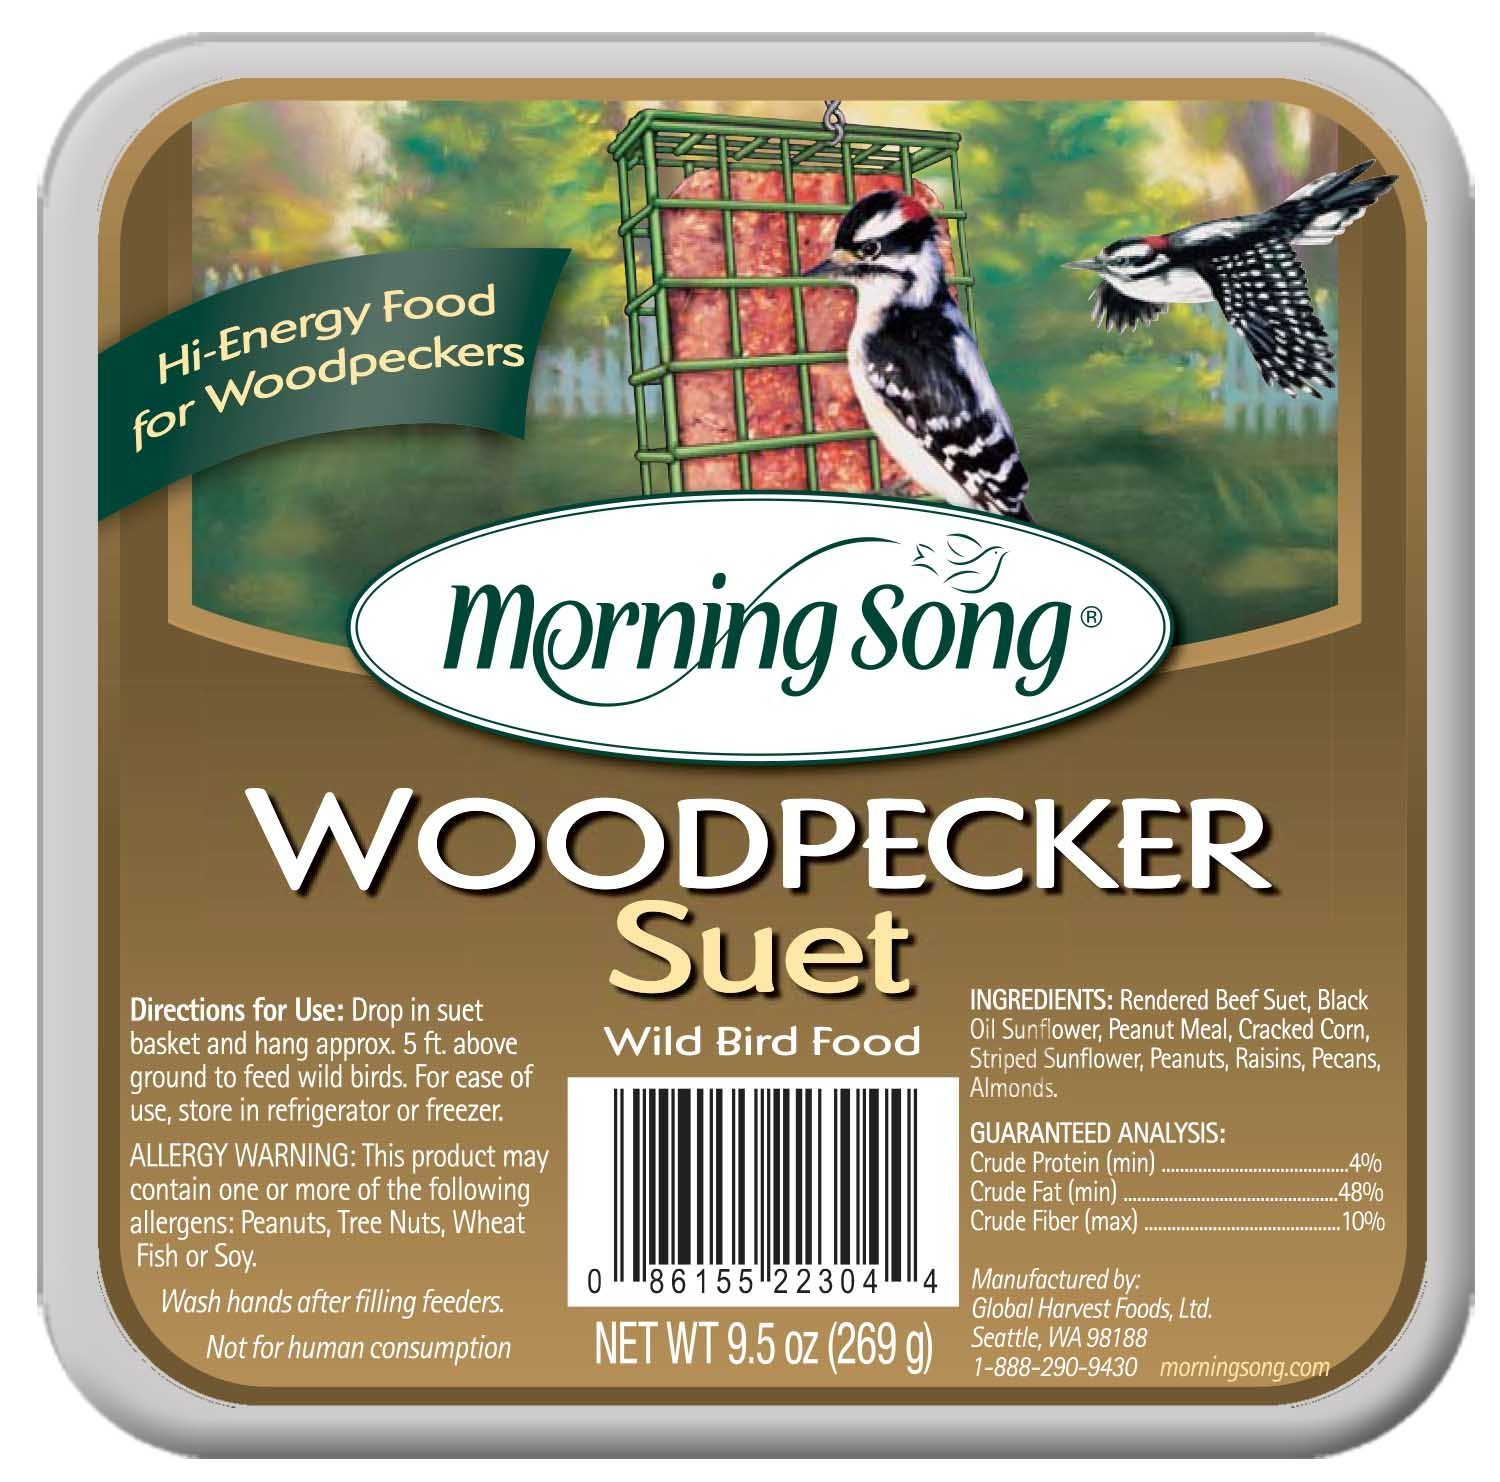 11462 Woodpecker Suet Wild Bird Food, 9.5-Ounce, Filled with seeds and nuts woodpeckers love By Morning Song by